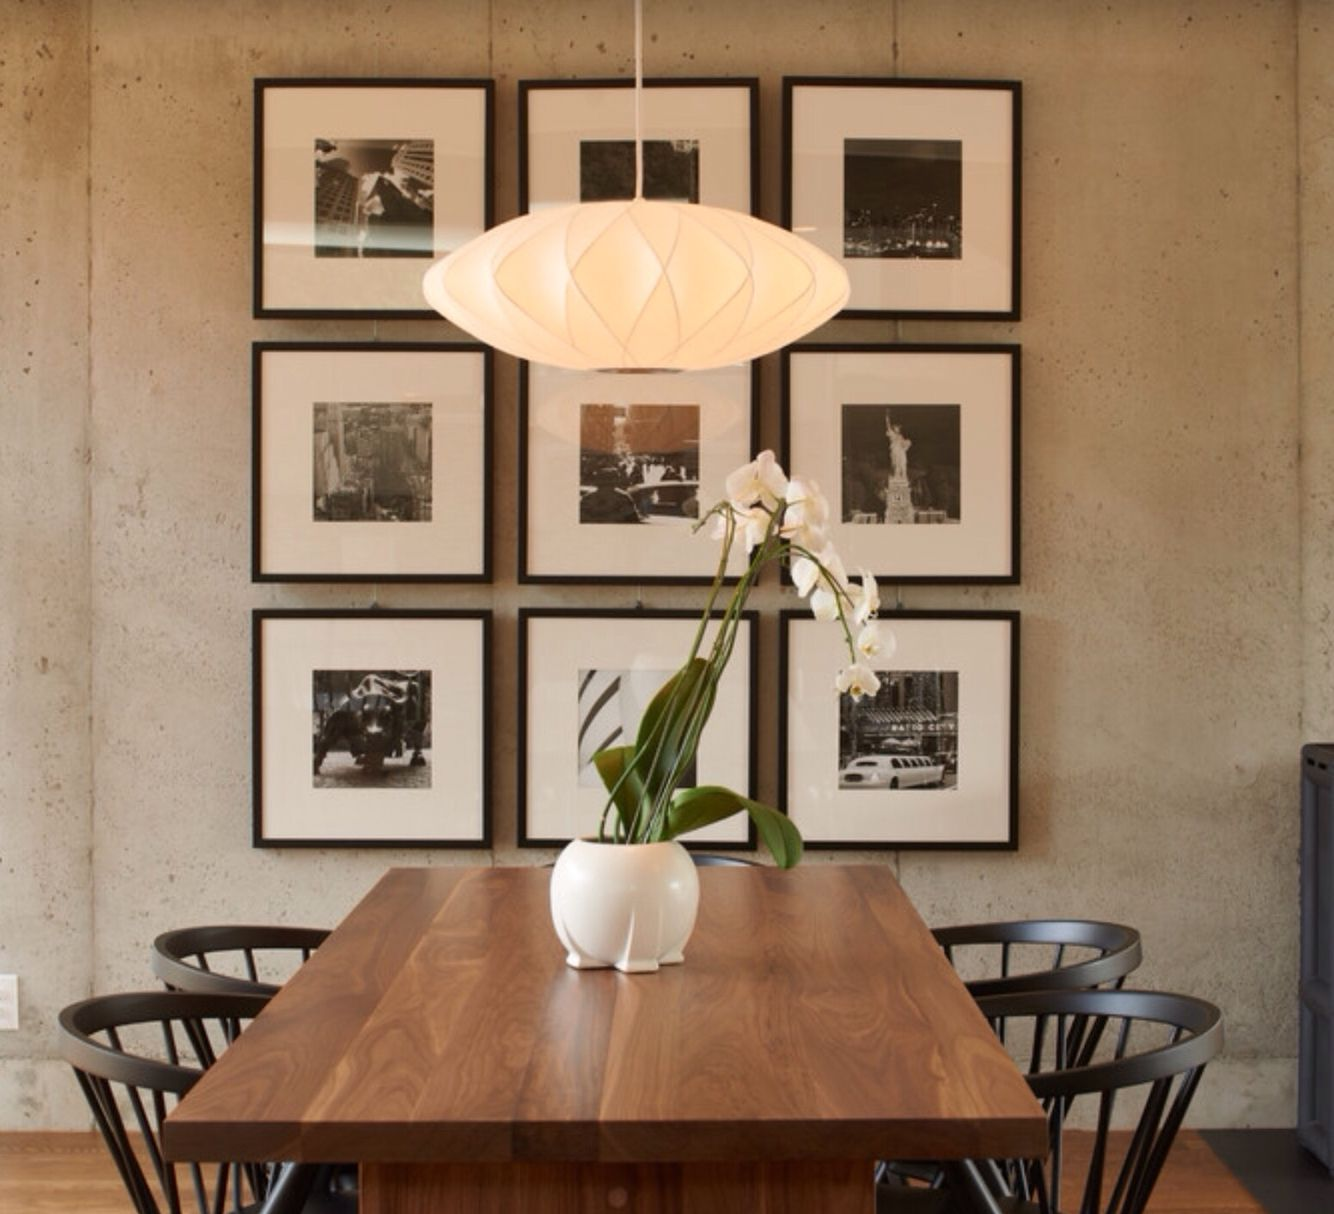 Wall Collage Dining Room Contemporary Dining Room Walls Dining Room Wall Decor